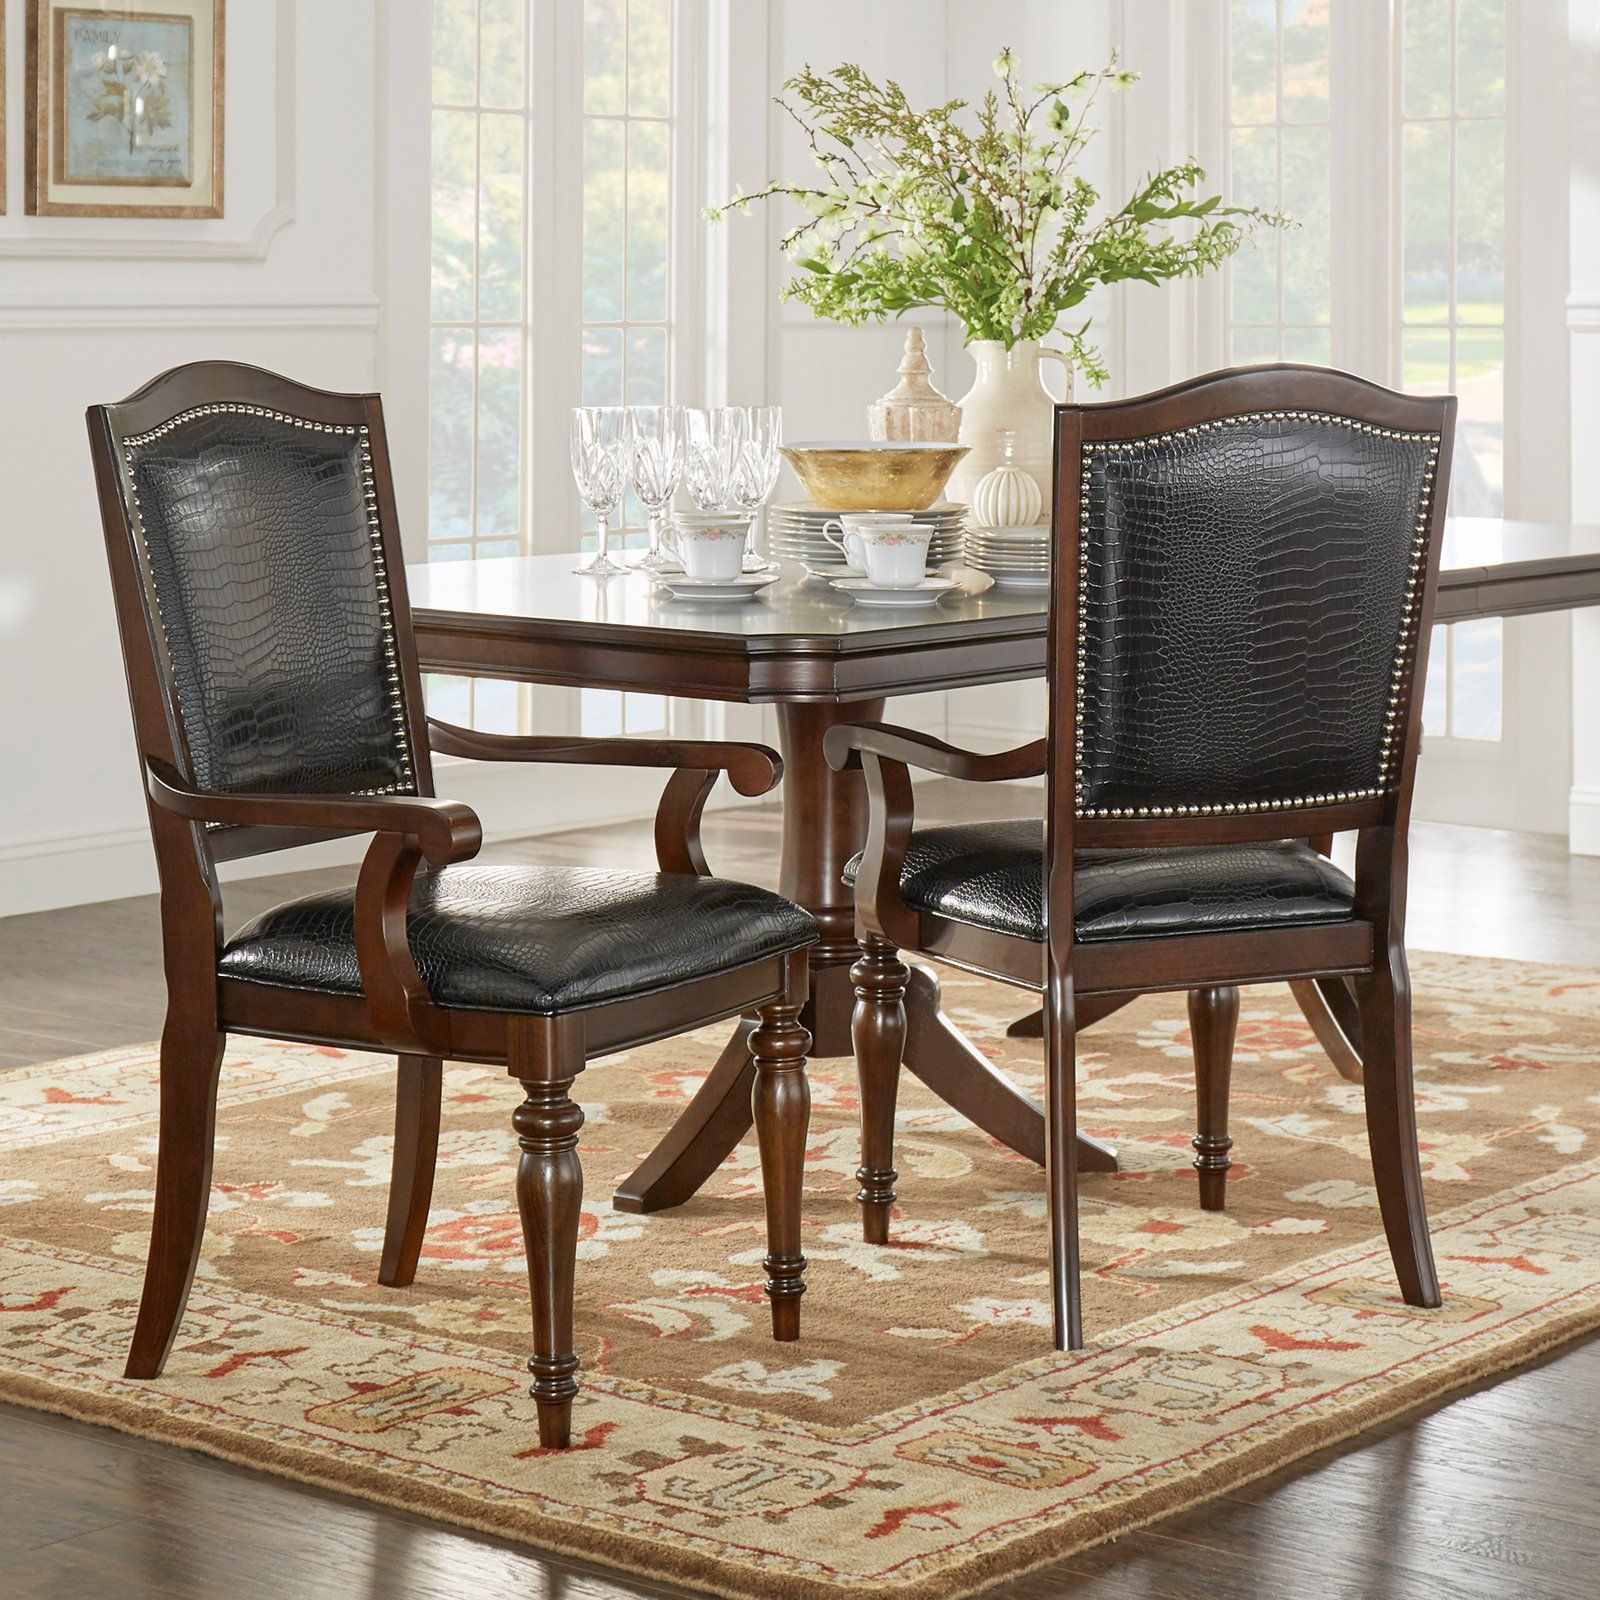 Homelegance Marston Alligator Faux Leather Nailhead Dining